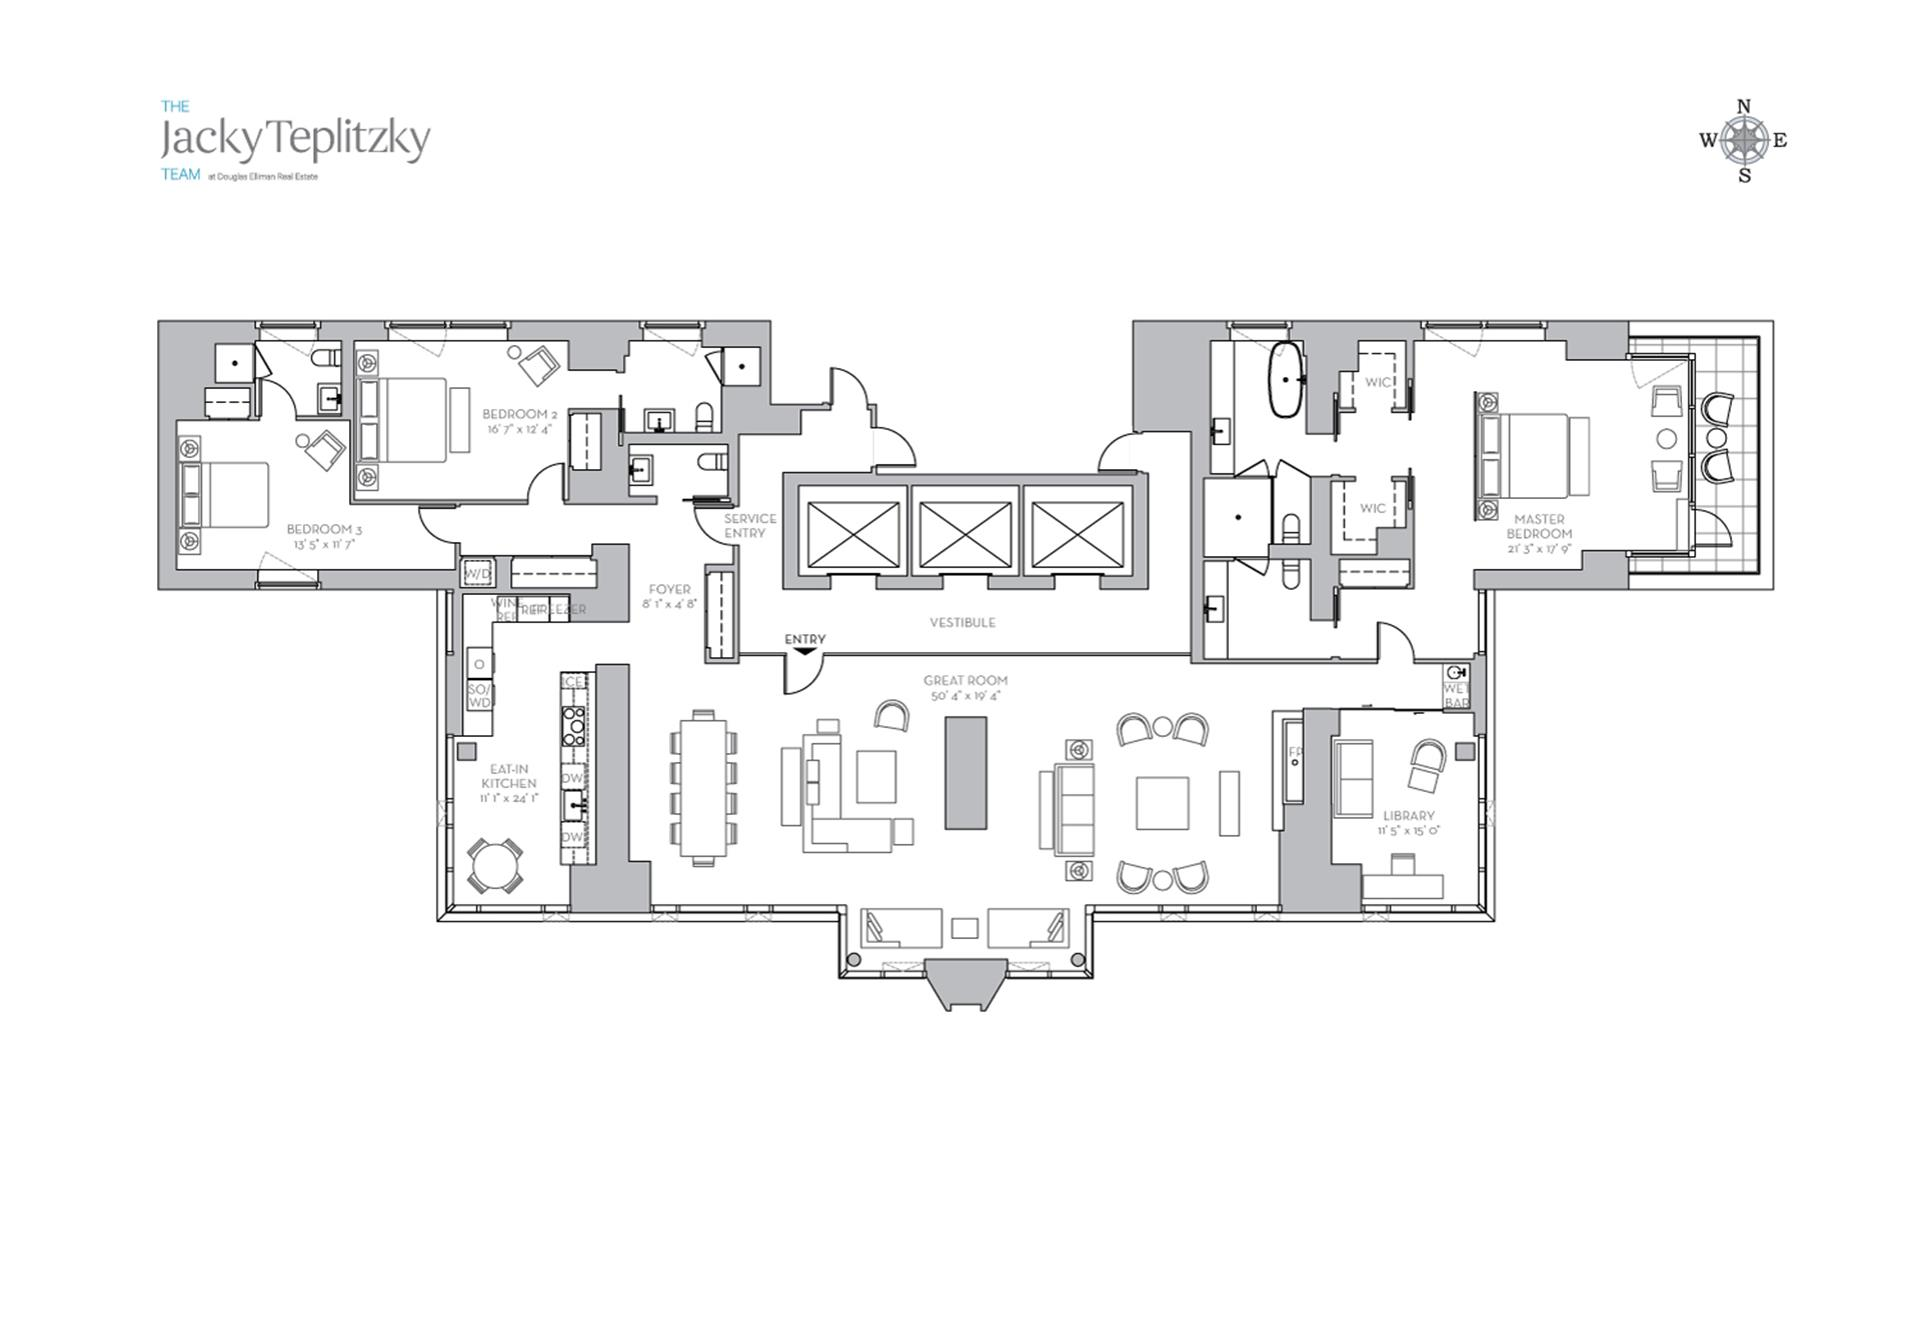 Floor plan of 135 West 52nd St, 37A - Midtown, New York